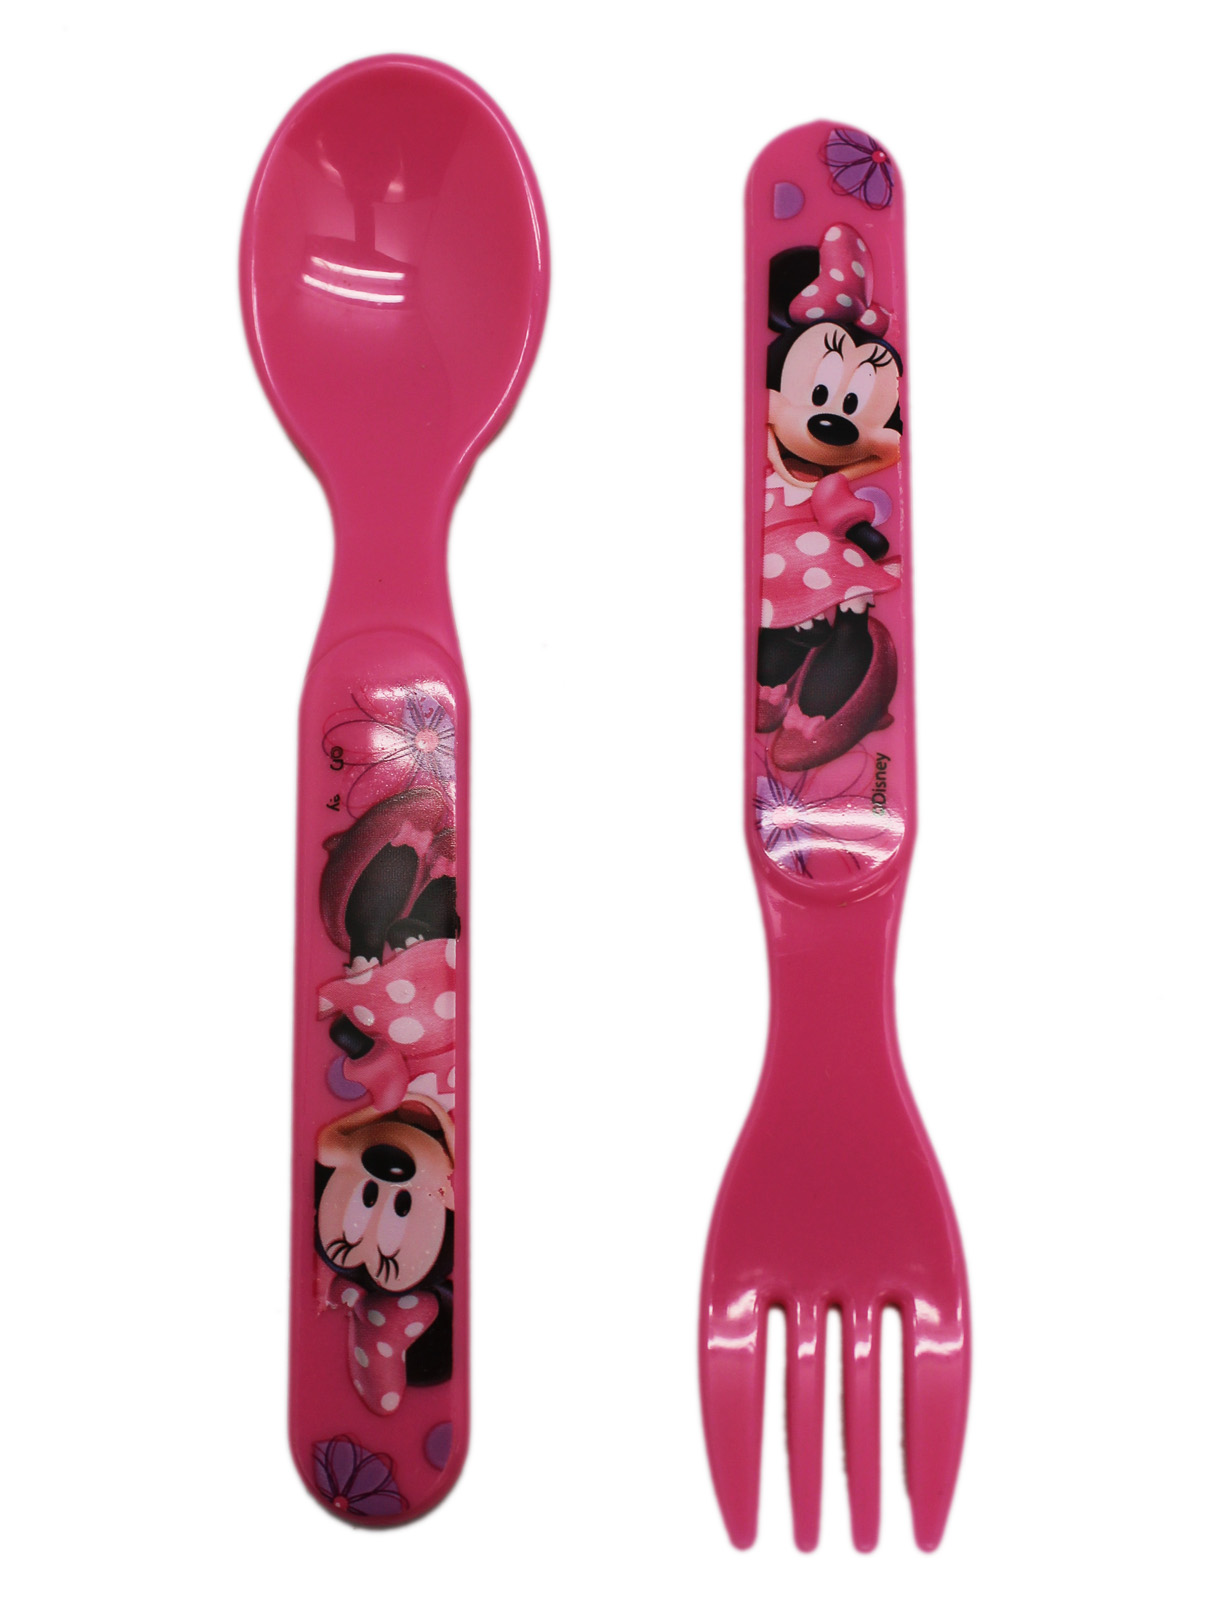 Disney's Minnie Mouse Pink Colored Kids Plastic Spoon and Fork Set by Disney